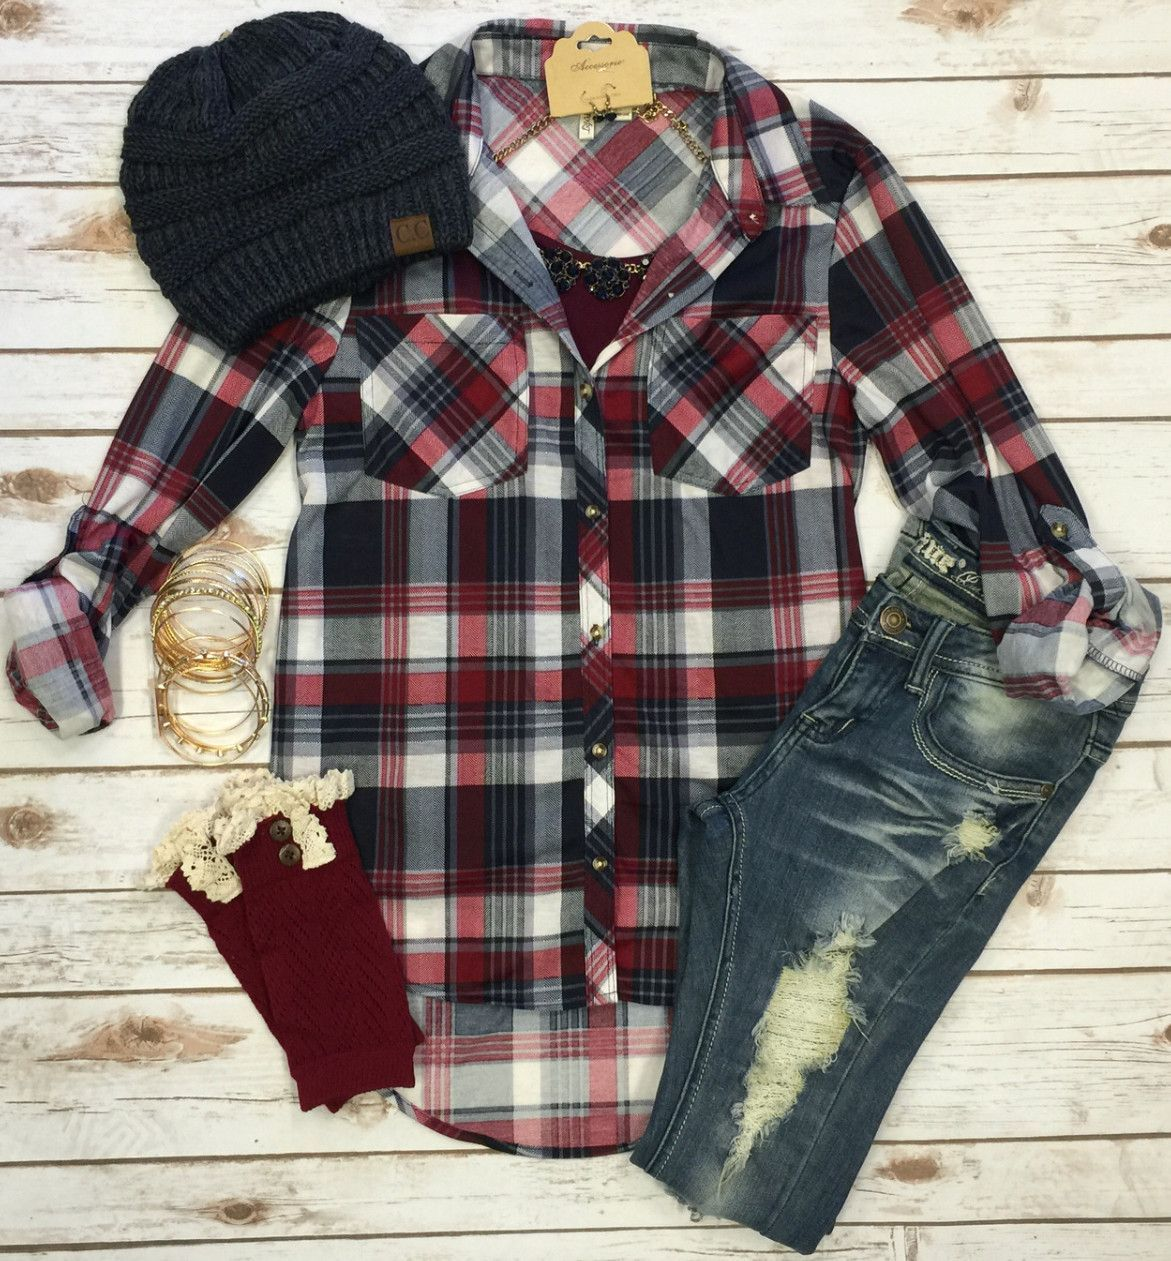 Flannel shirt outfits for women  What I like about you Plaid Flannel Top Burgundy  My Style